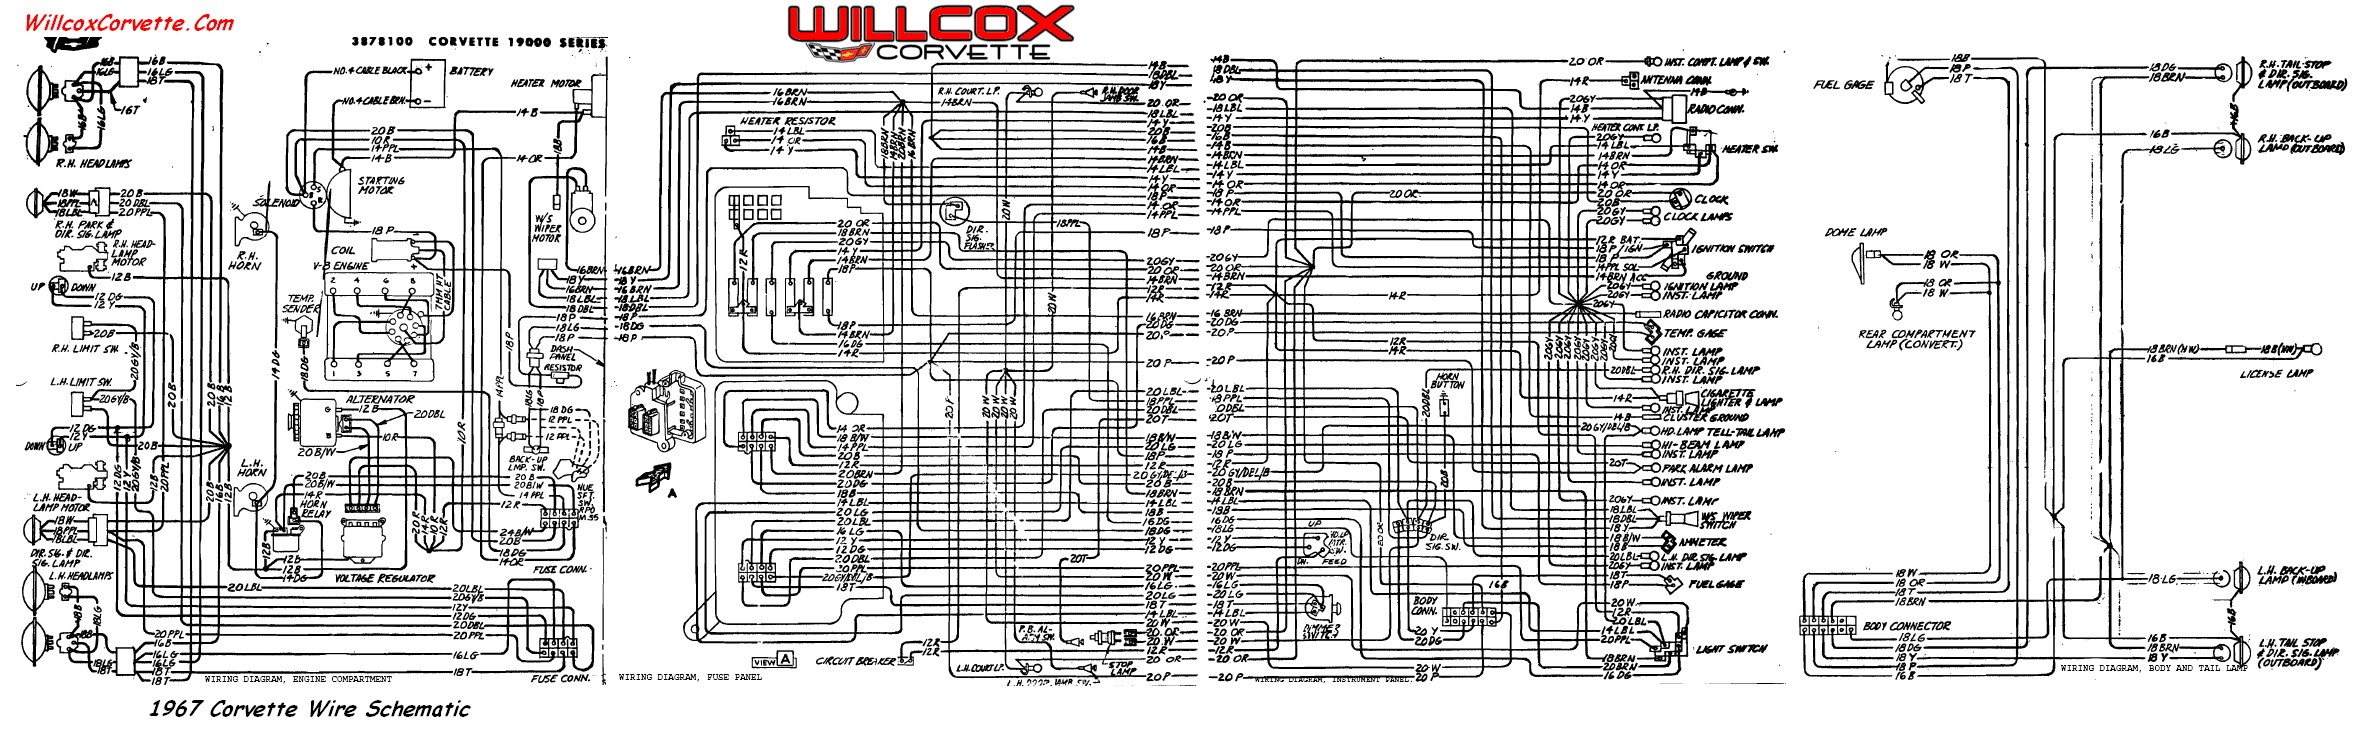 1974 Corvette Wiring Harness Great Engine Diagram Schematic Hot Rod Nz 1975 Diagrams Source Rh 10 6 2 Ludwiglab De